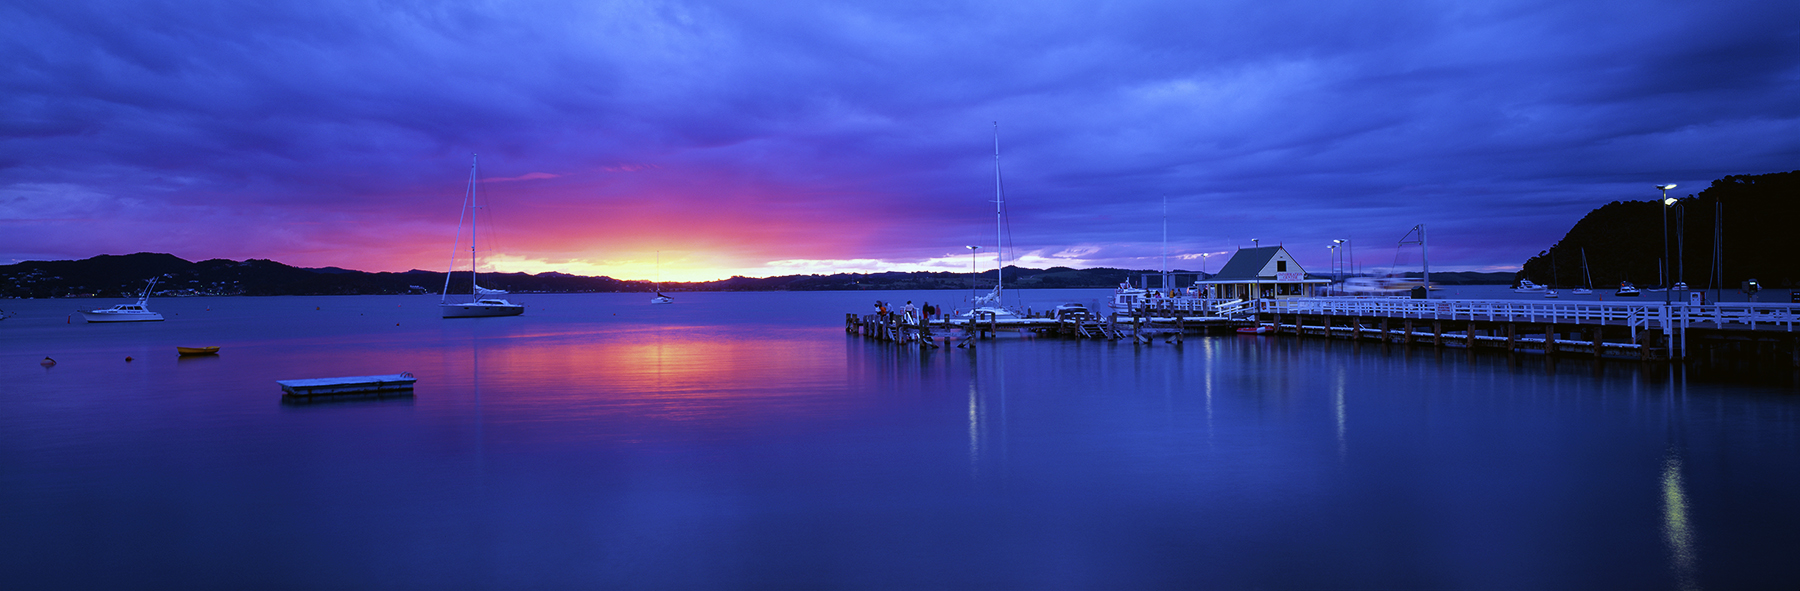 Historic Russell, Bay Of Islands, New Zealand. A Limited Edition Fine Art Landscape Photograph by Richard Hume